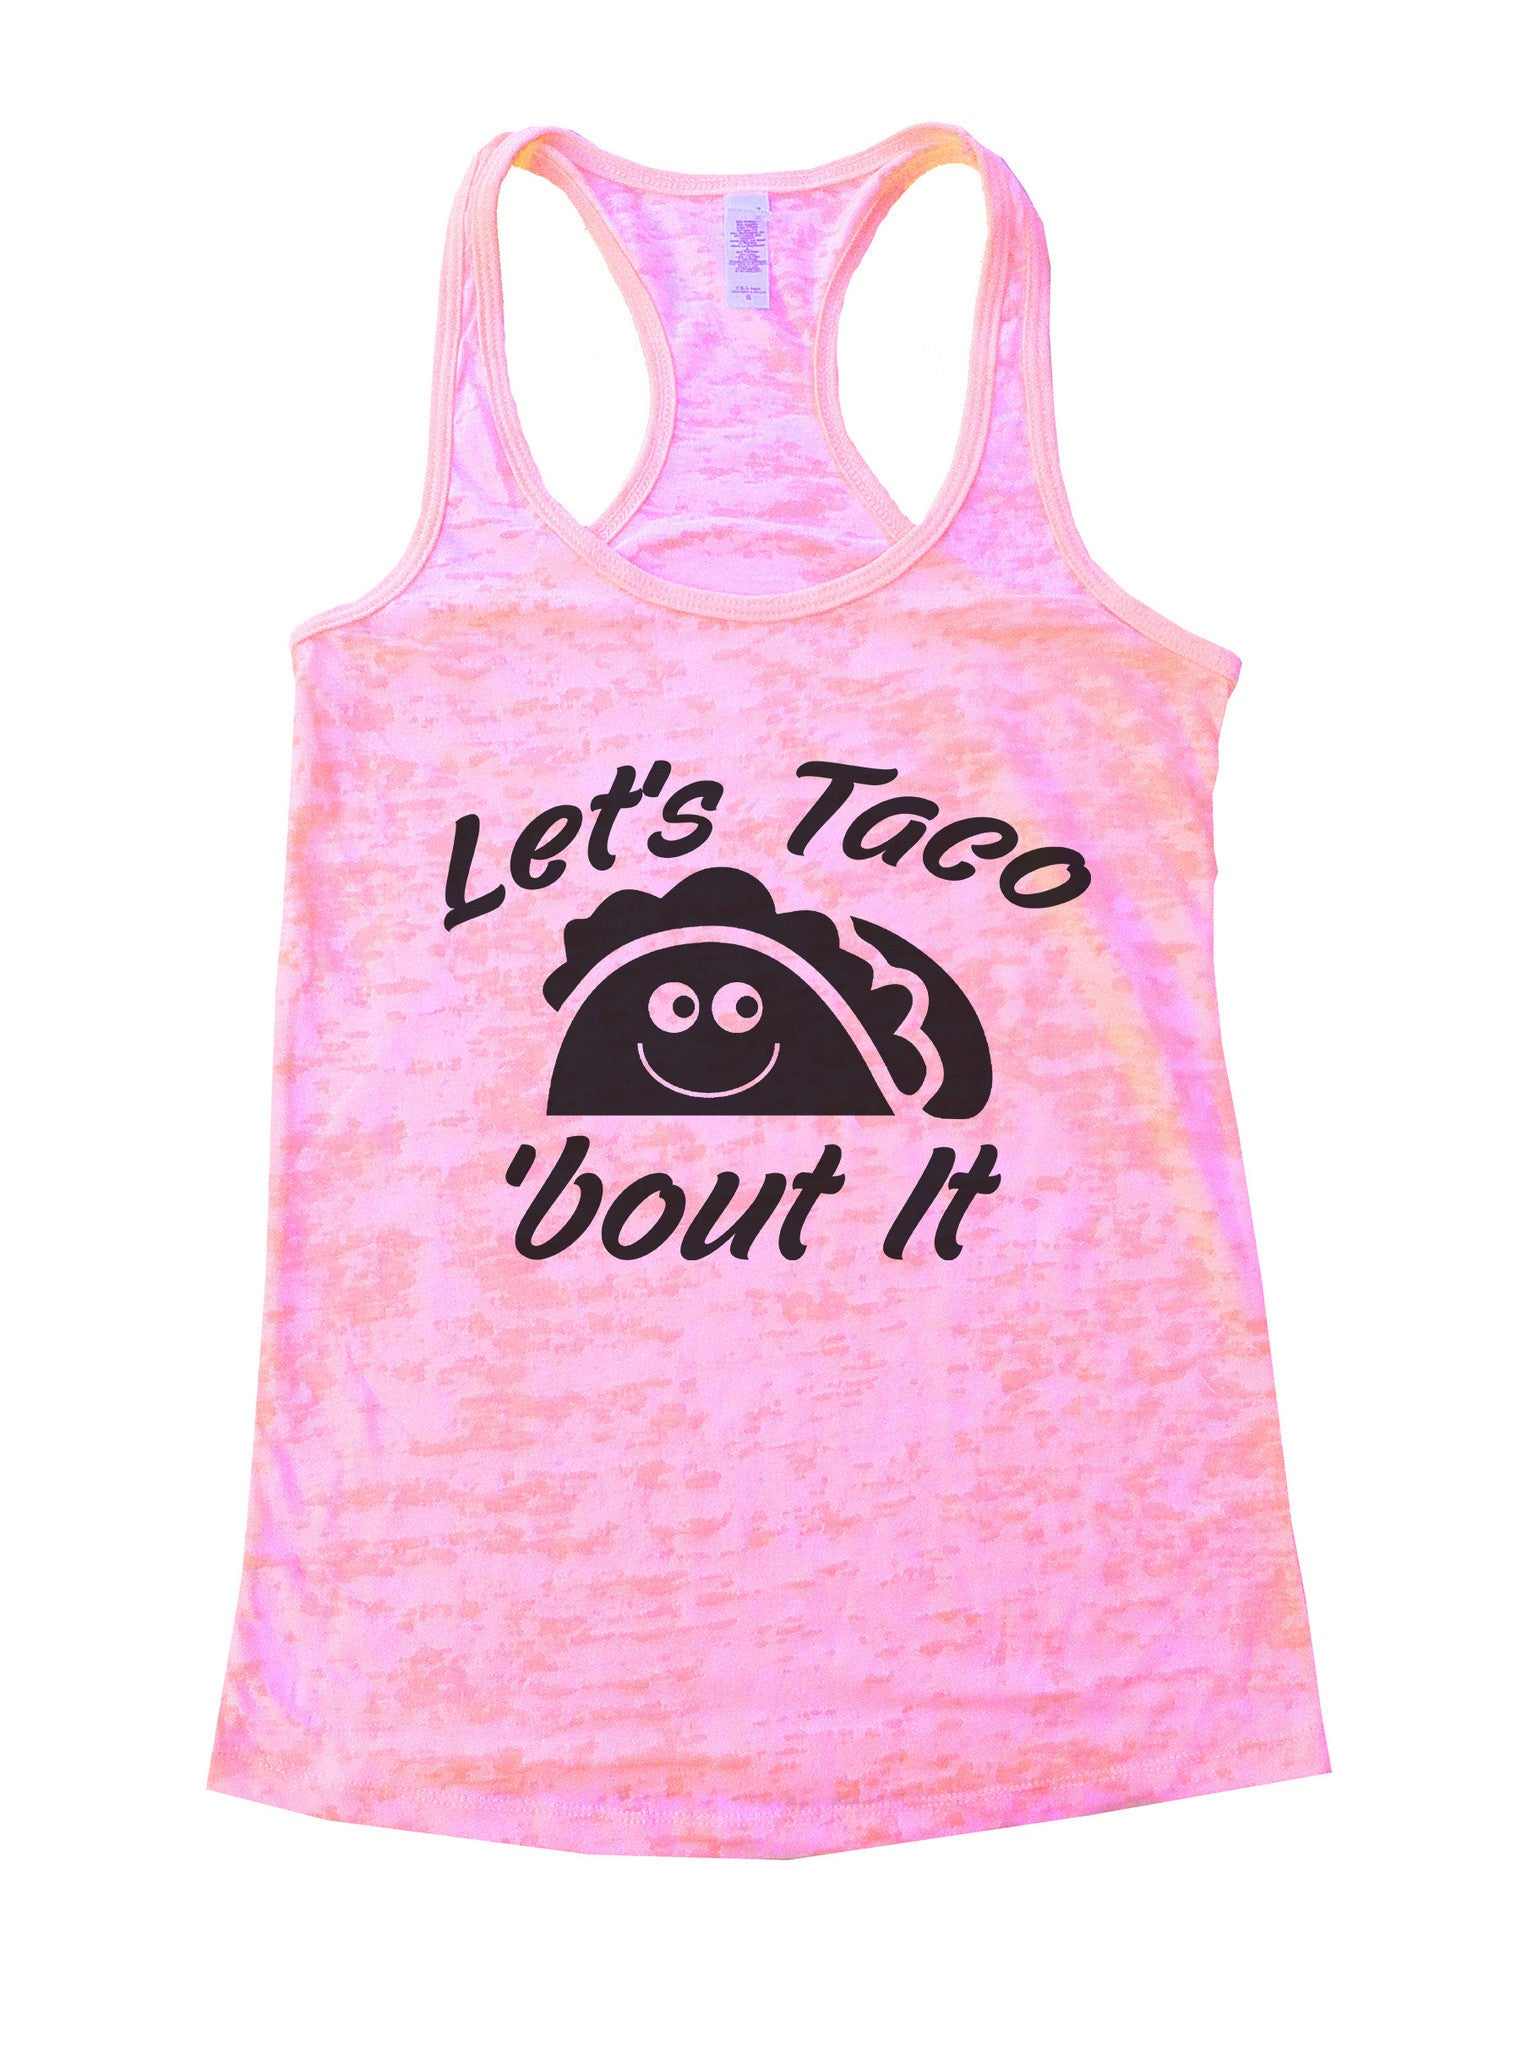 Let's Taco 'Bout It Burnout Tank Top By BurnoutTankTops.com - B860 - Funny Shirts Tank Tops Burnouts and Triblends  - 1